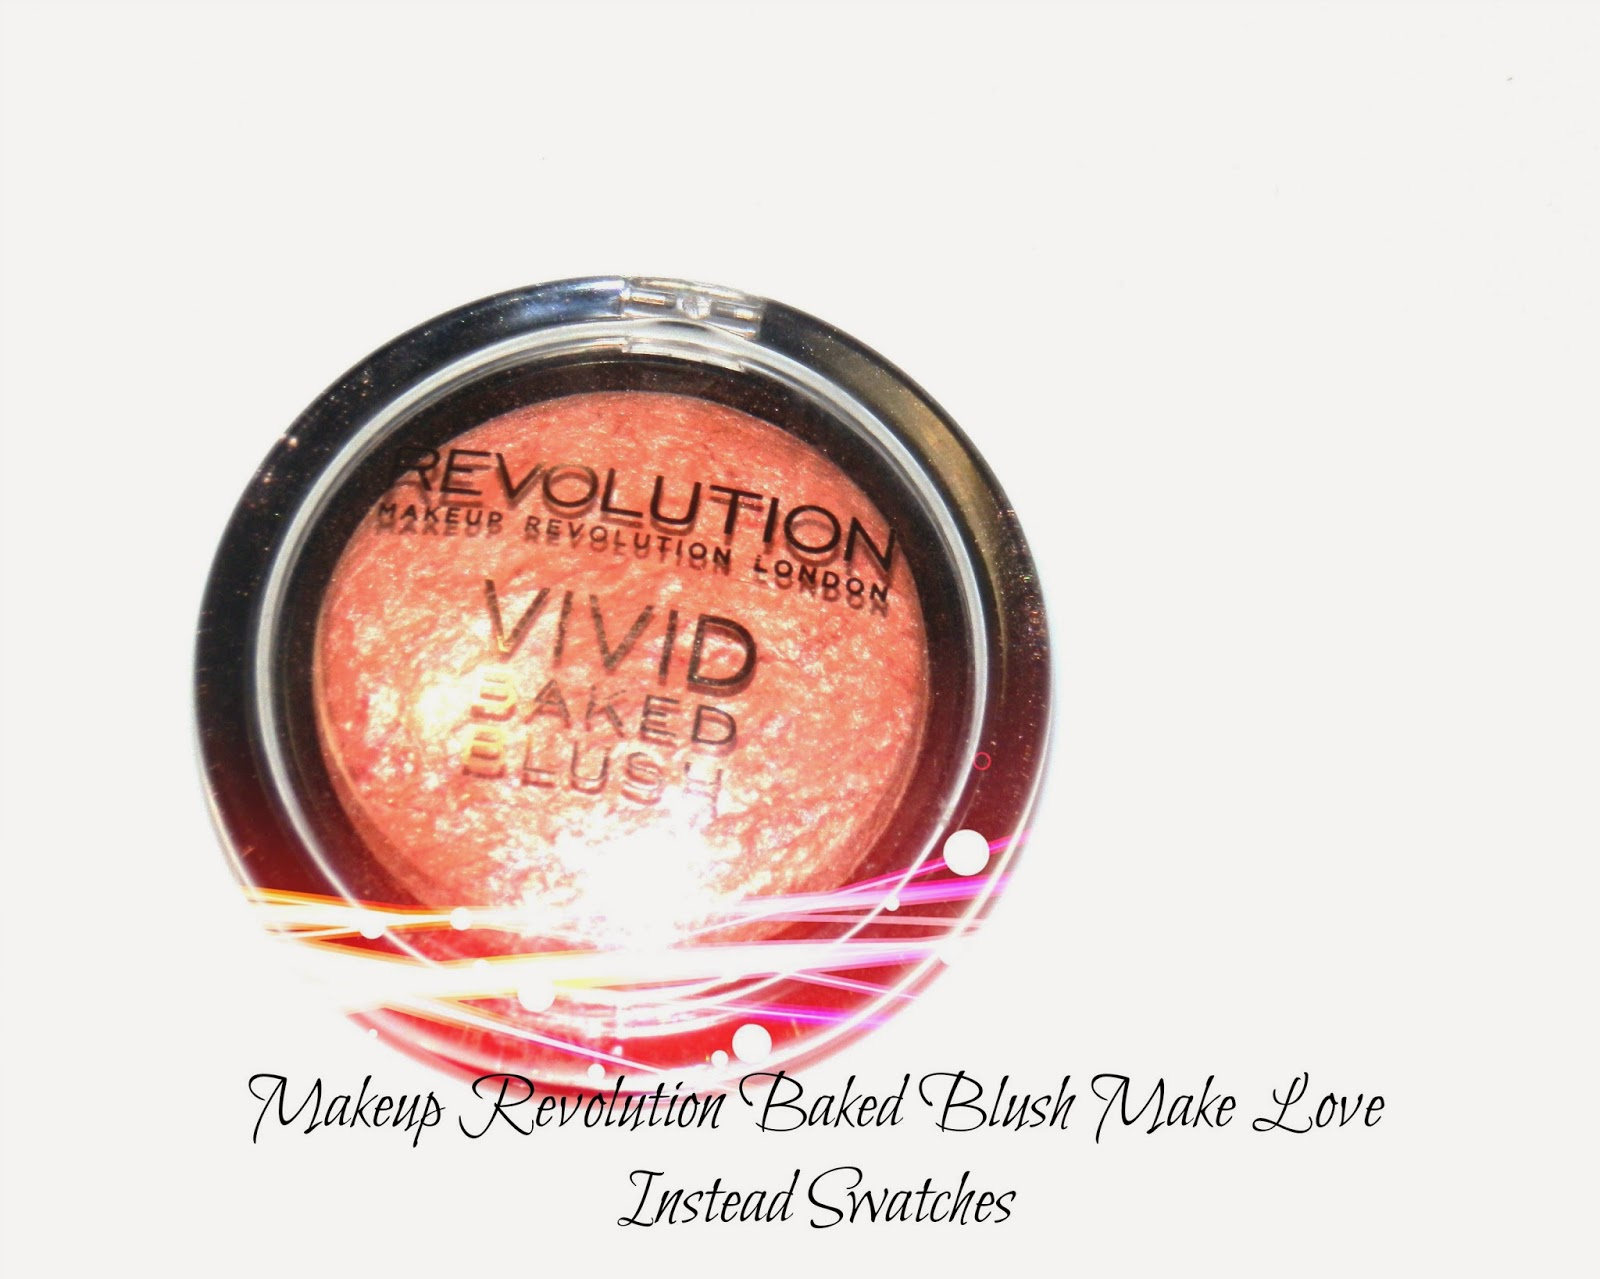 Makeup Revolution Baked Blush Make Love Instead Swatches